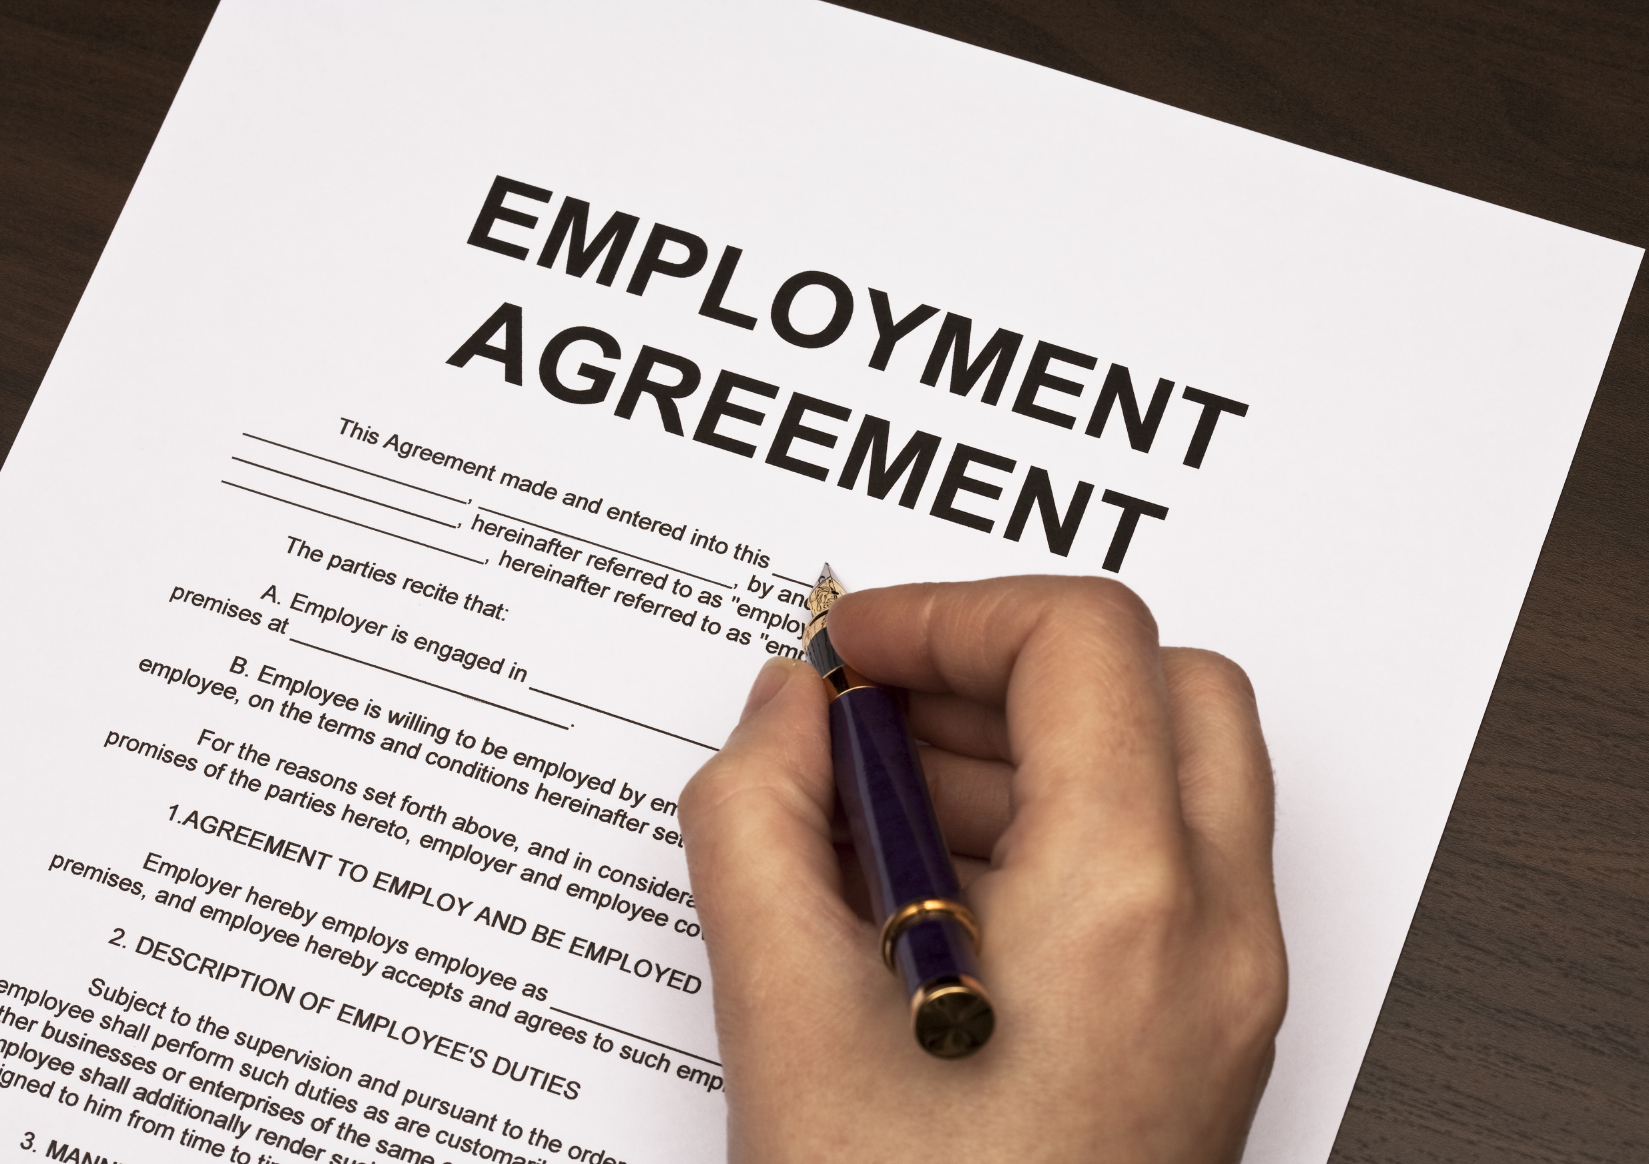 Photo to illustrate article https://www.lkshields.ie/images/uploads/news/Employment_Contract.jpg.